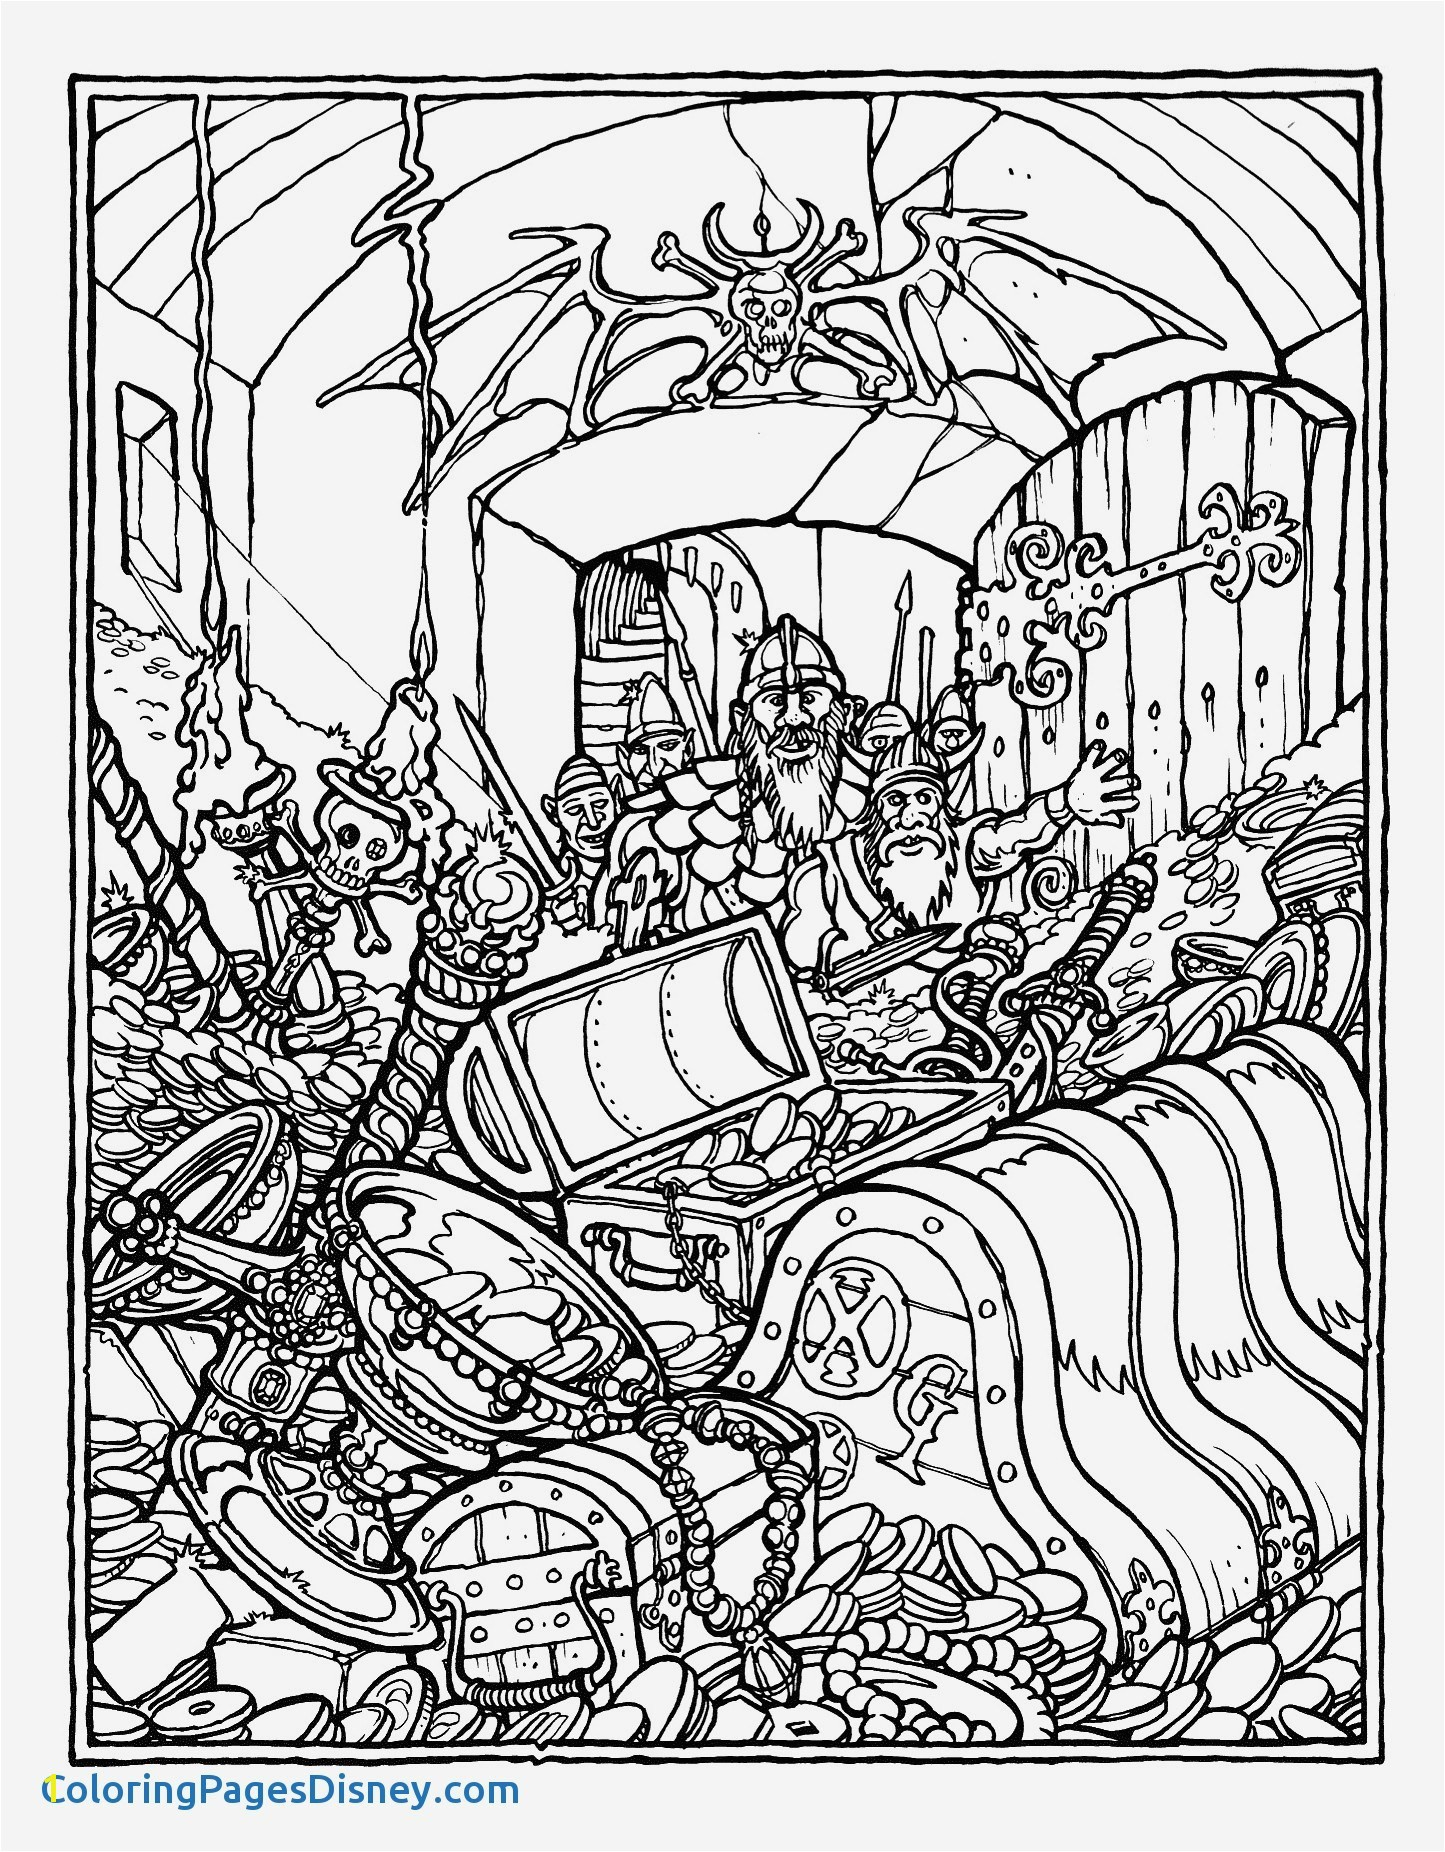 Dungeons and Dragons Coloring Pages Beautiful Printable Advanced Coloring Pages Fresh Monster Brains the Ficial